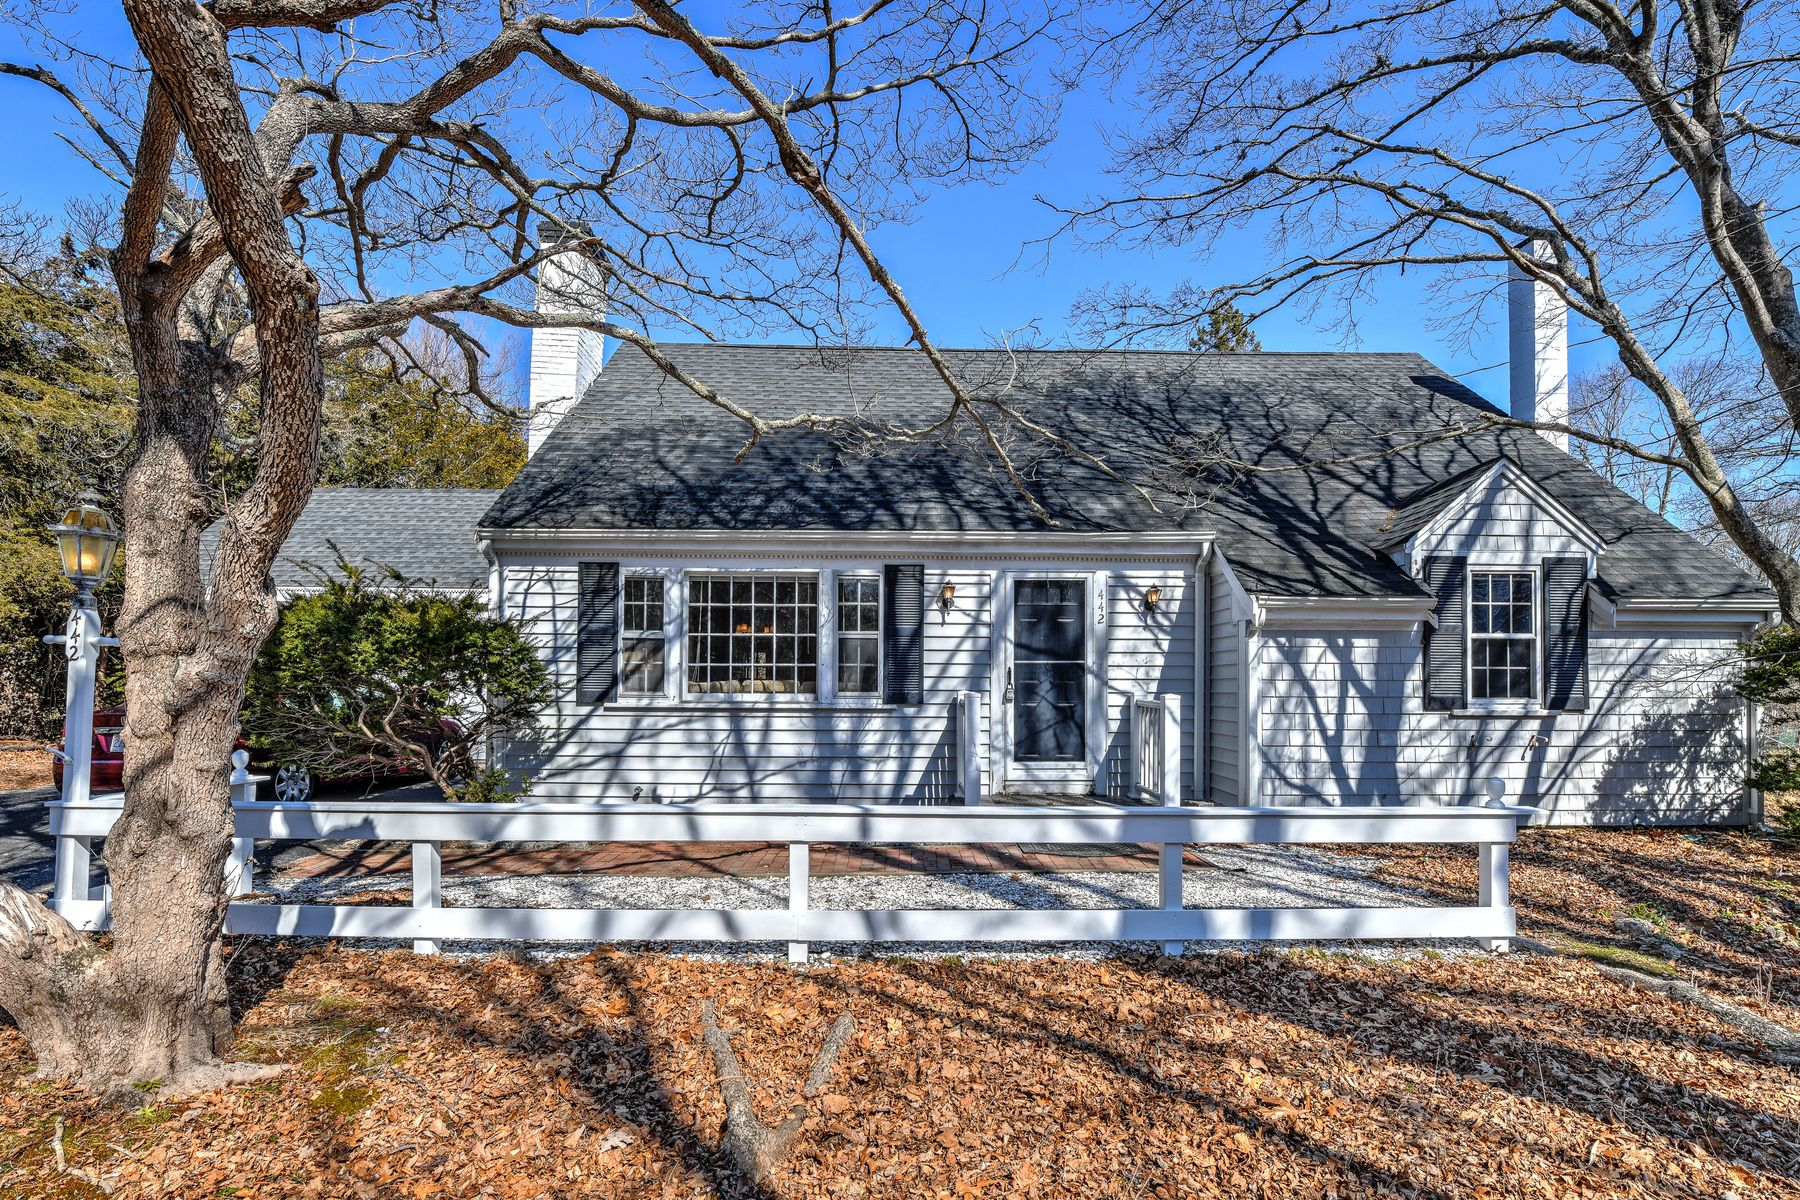 Single Family Home for Active at Cape Close to Craigville Beach 442 Pine Street Centerville, Massachusetts 02632 United States